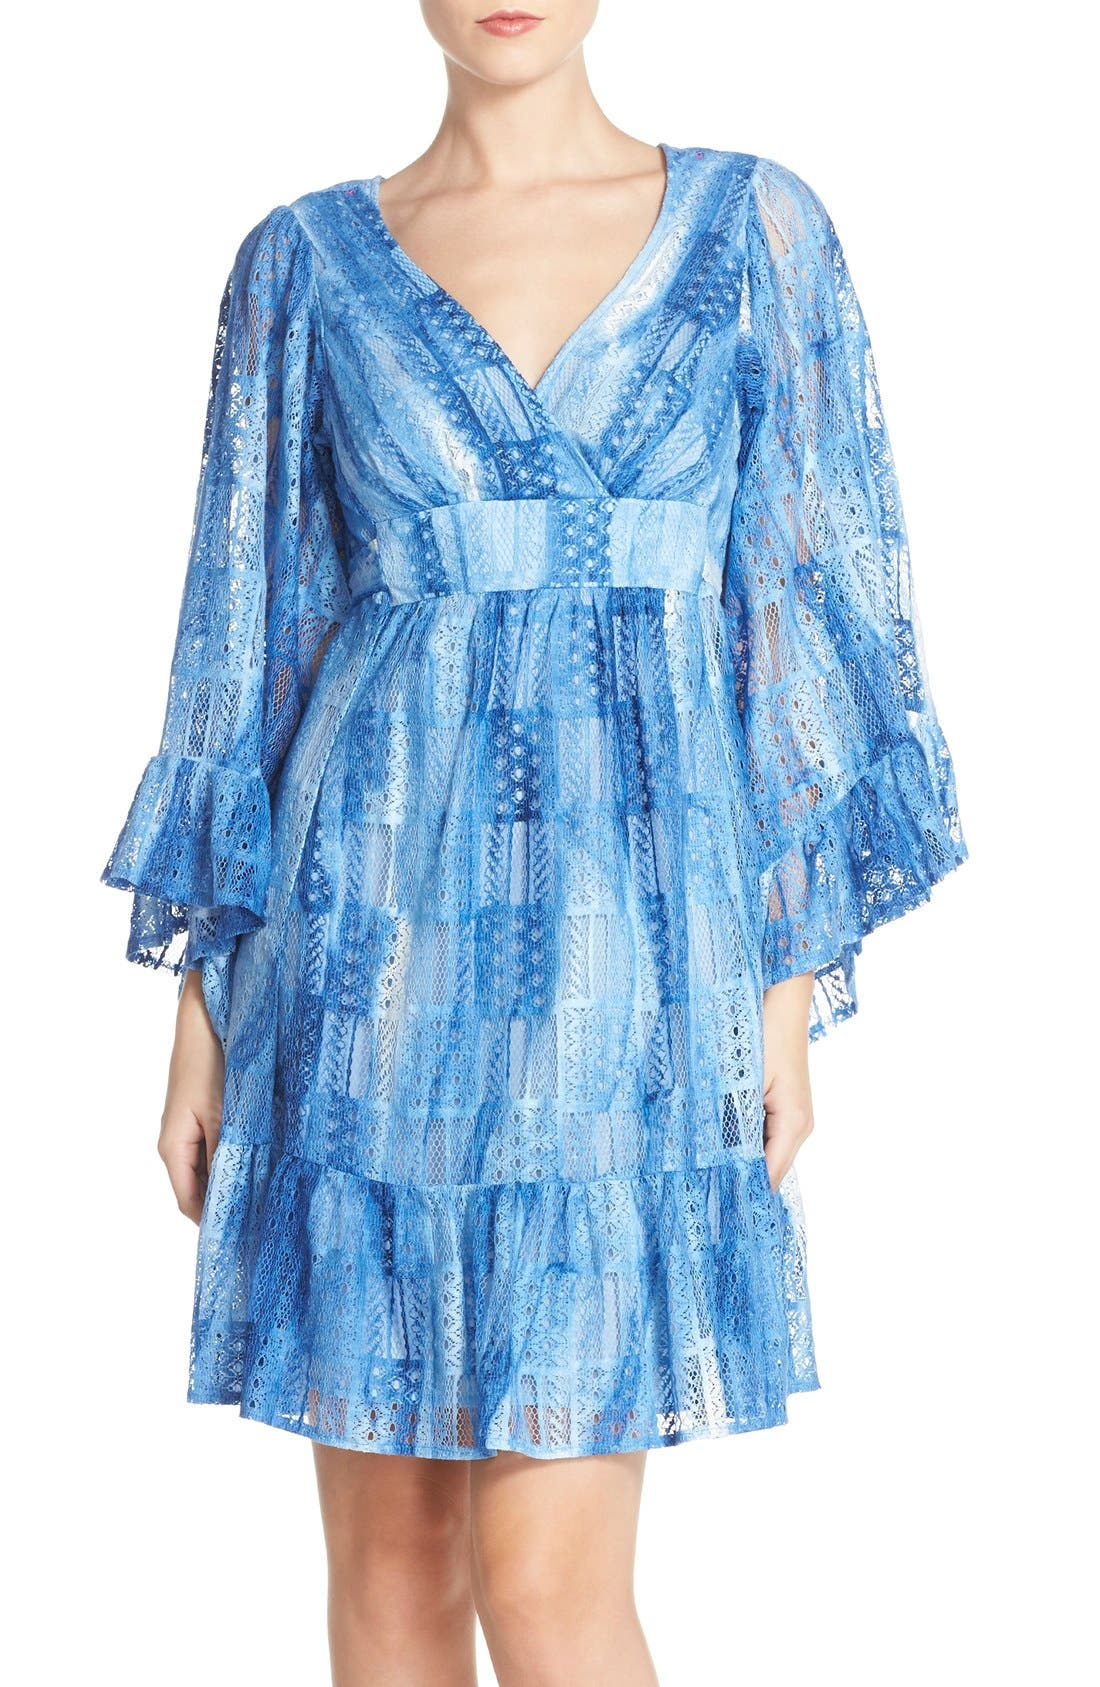 Alternate Image 1 Selected - Betsey Johnson Cotton Blend Babydoll Dress